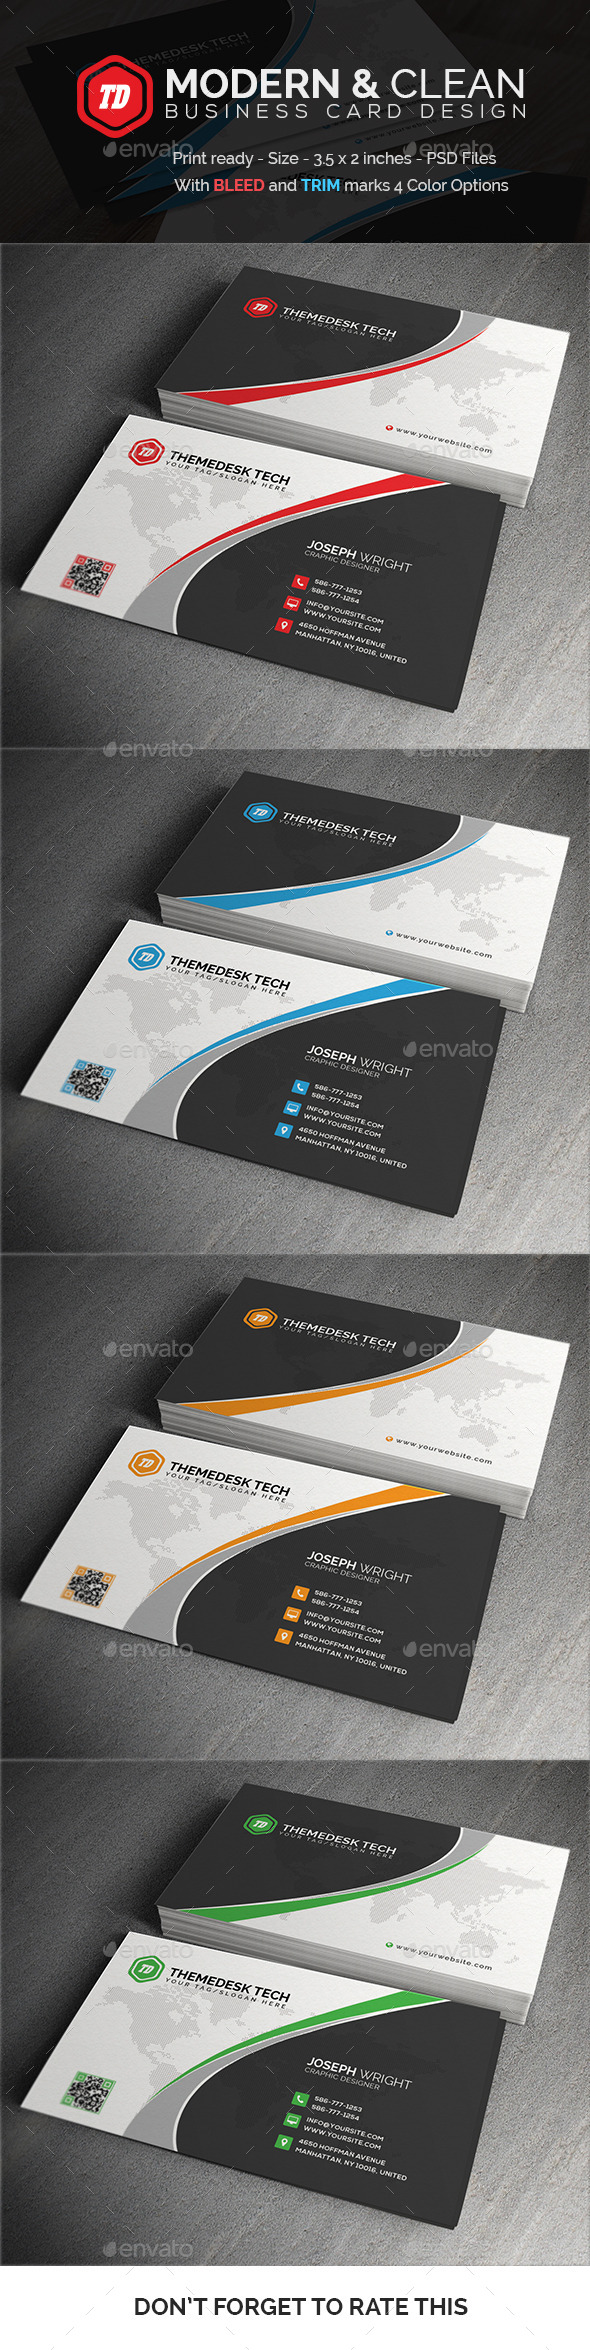 Modern and Clean - Business Card - Corporate Business Cards